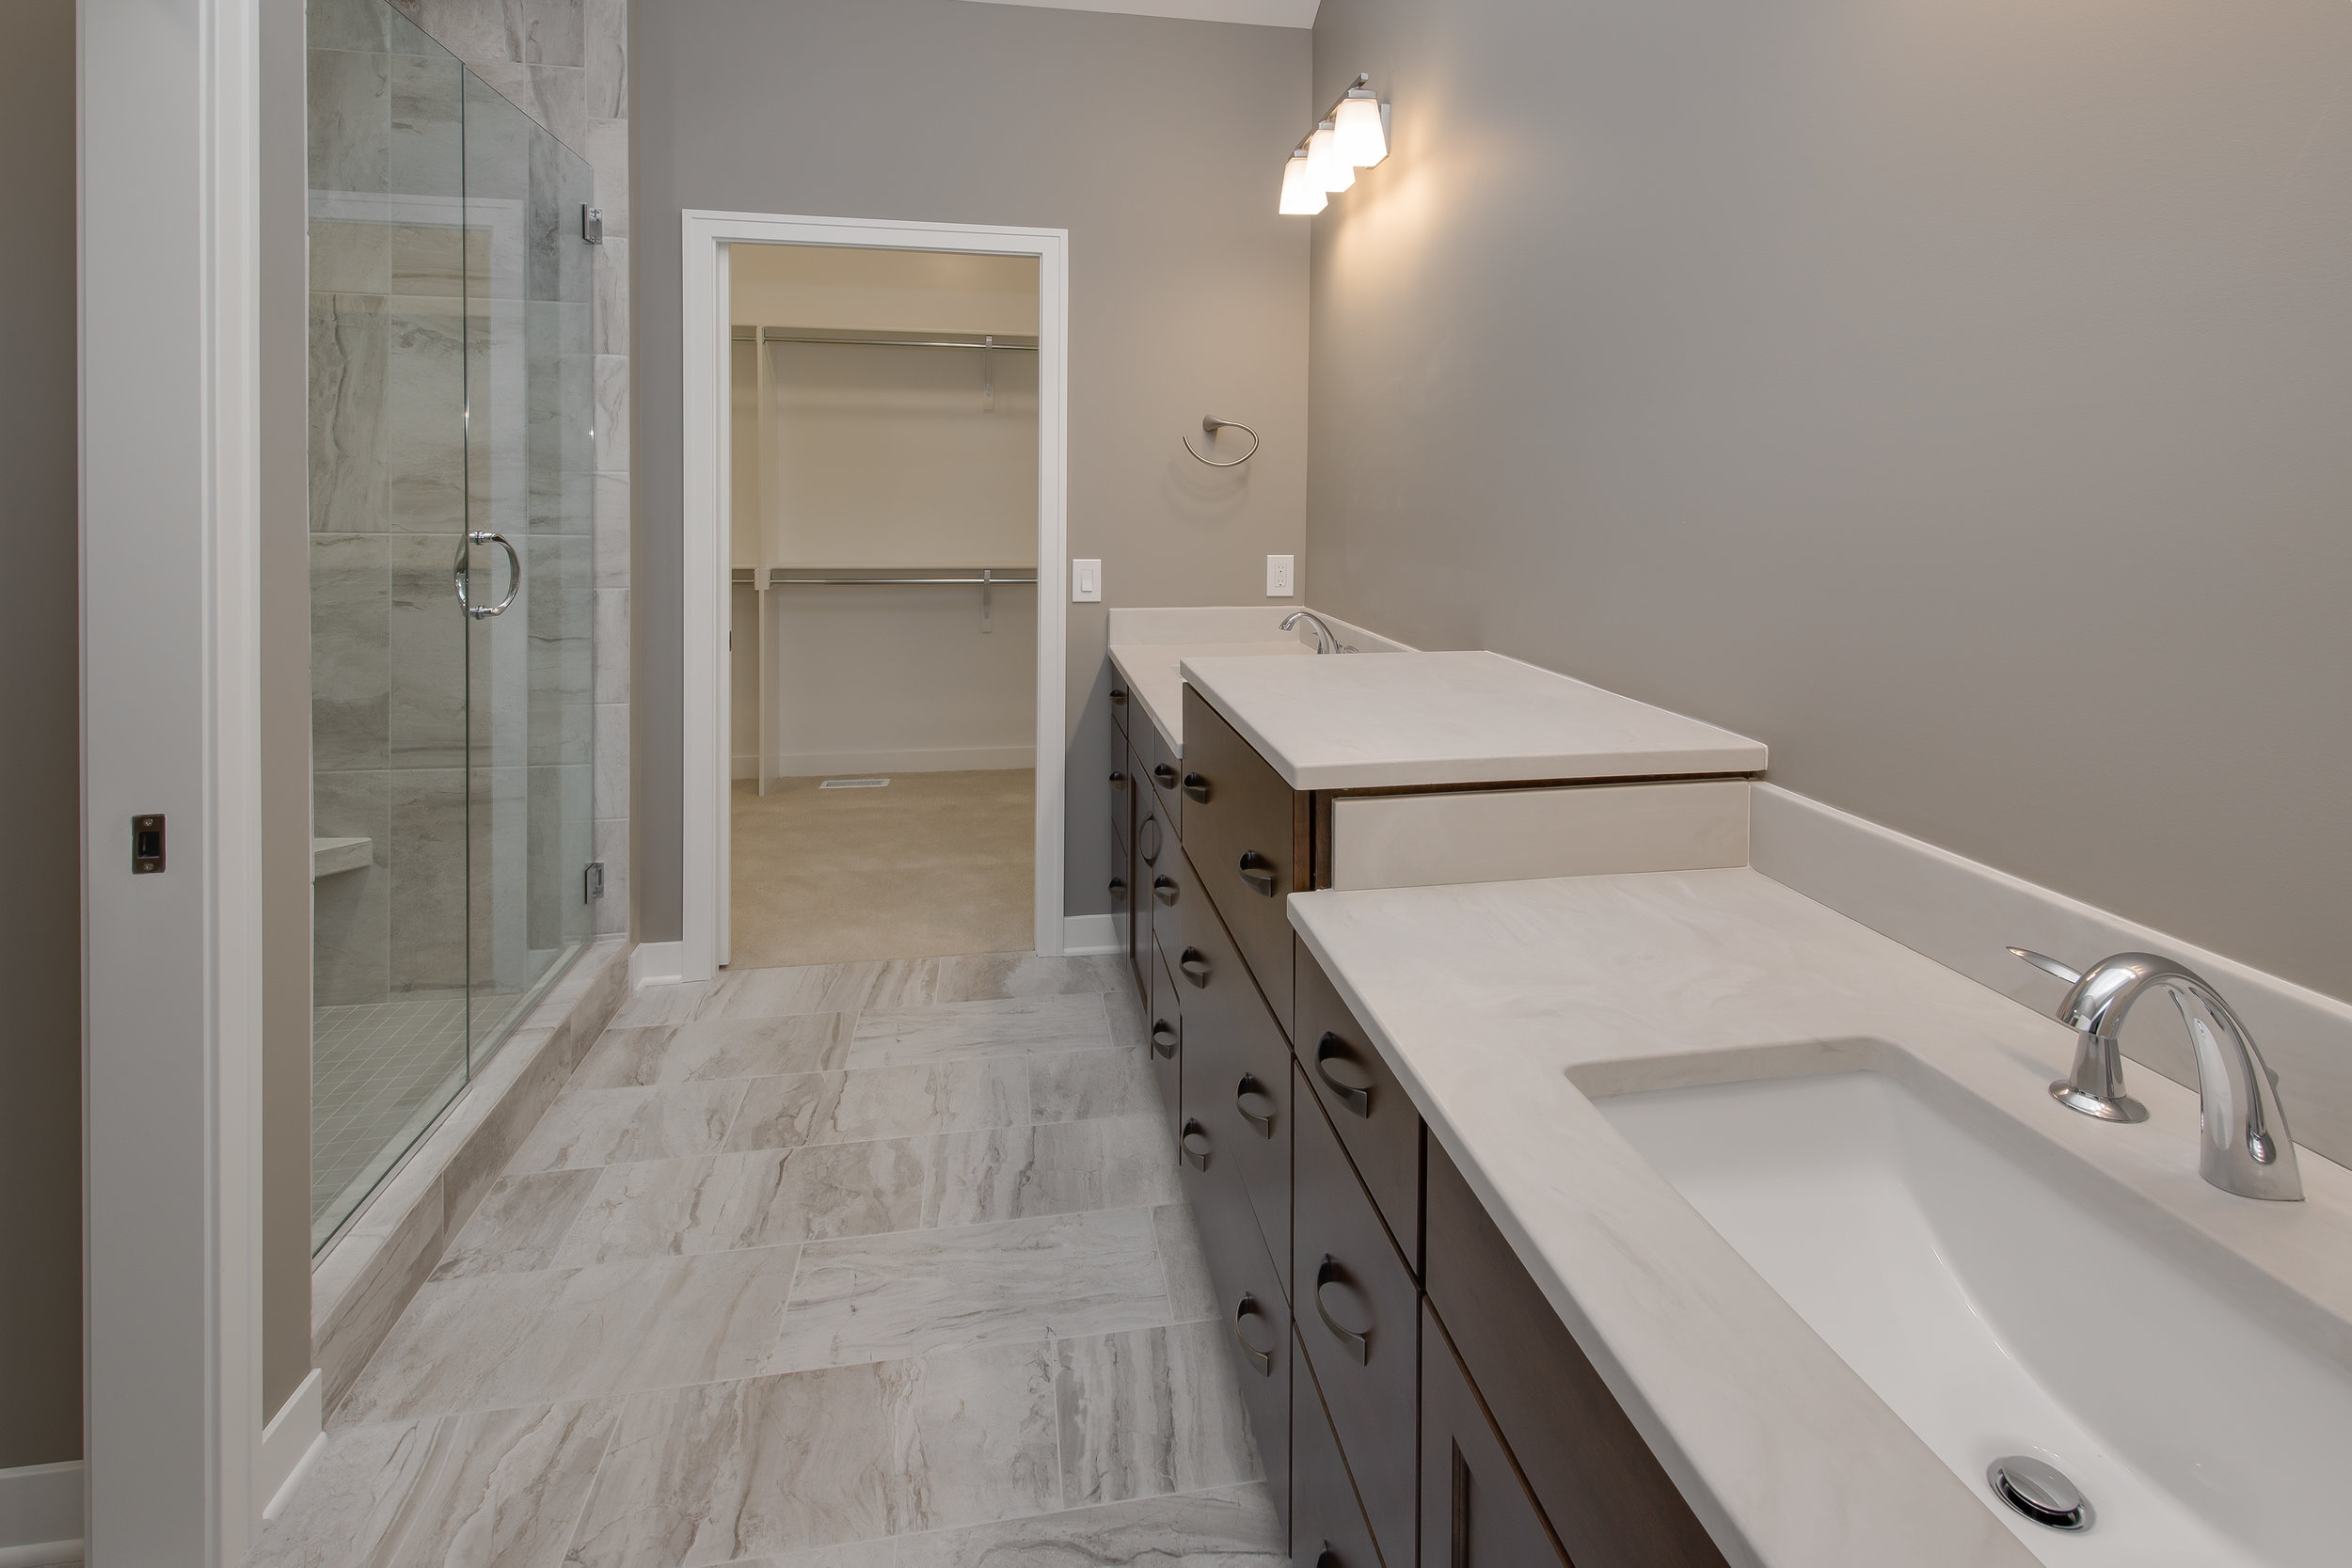 All photos are stock photos and are not meant to represent the finish and color of home under construction.